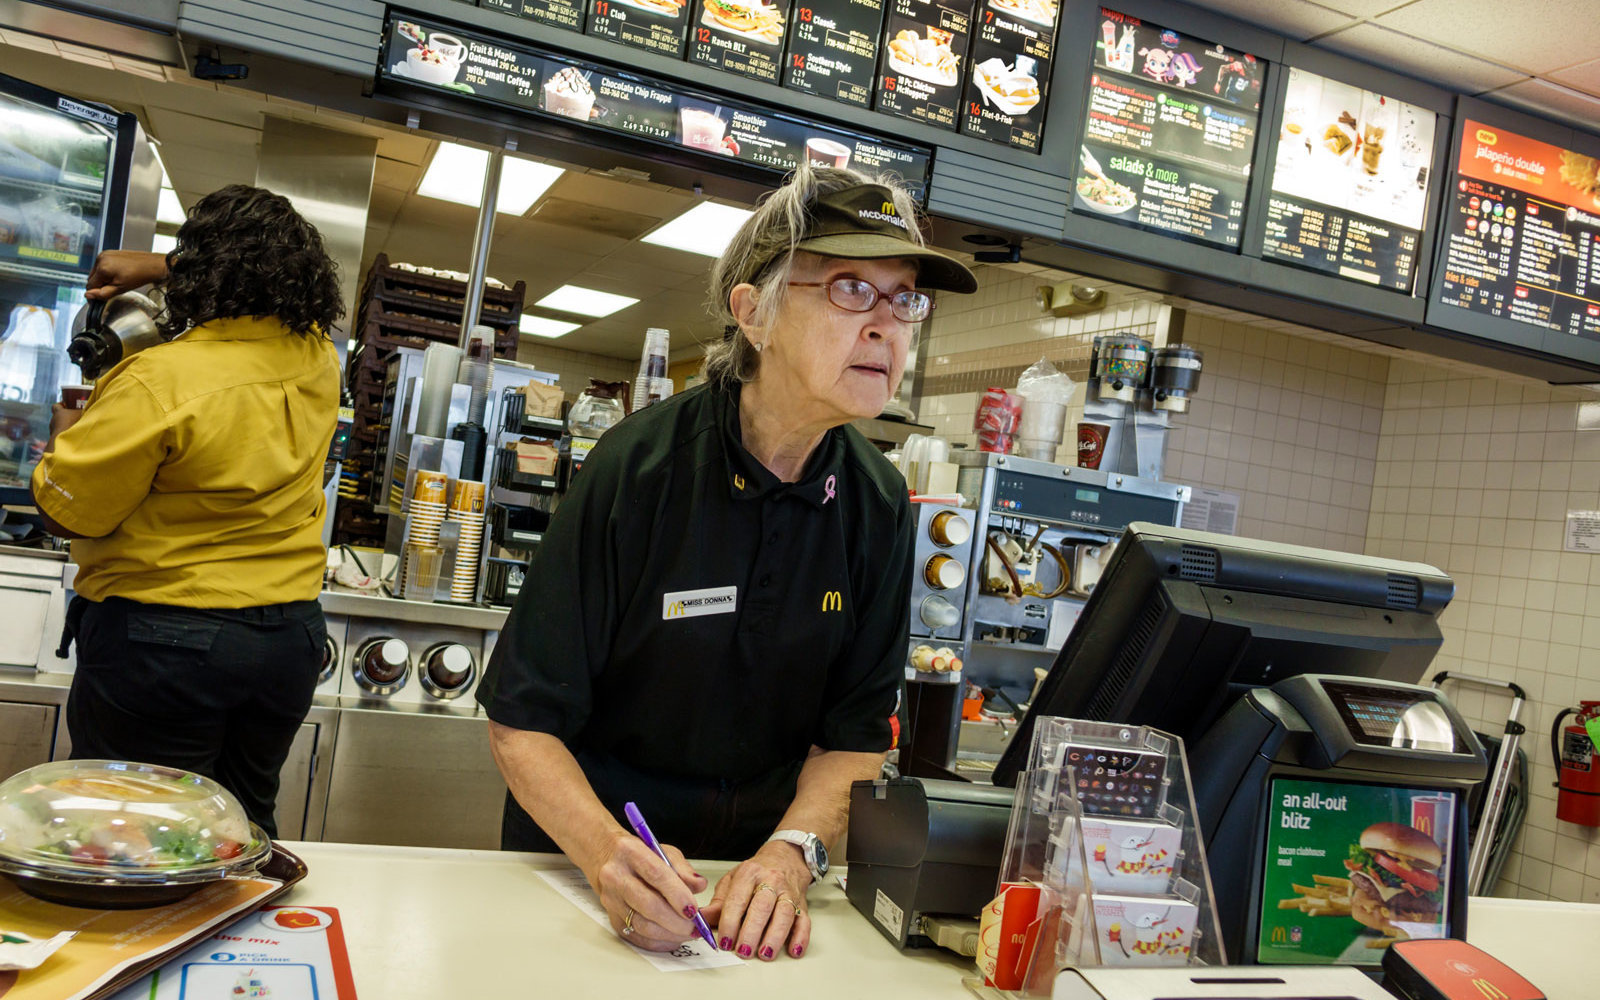 McDonald's and AARP Join Forces to Hire Older Workers